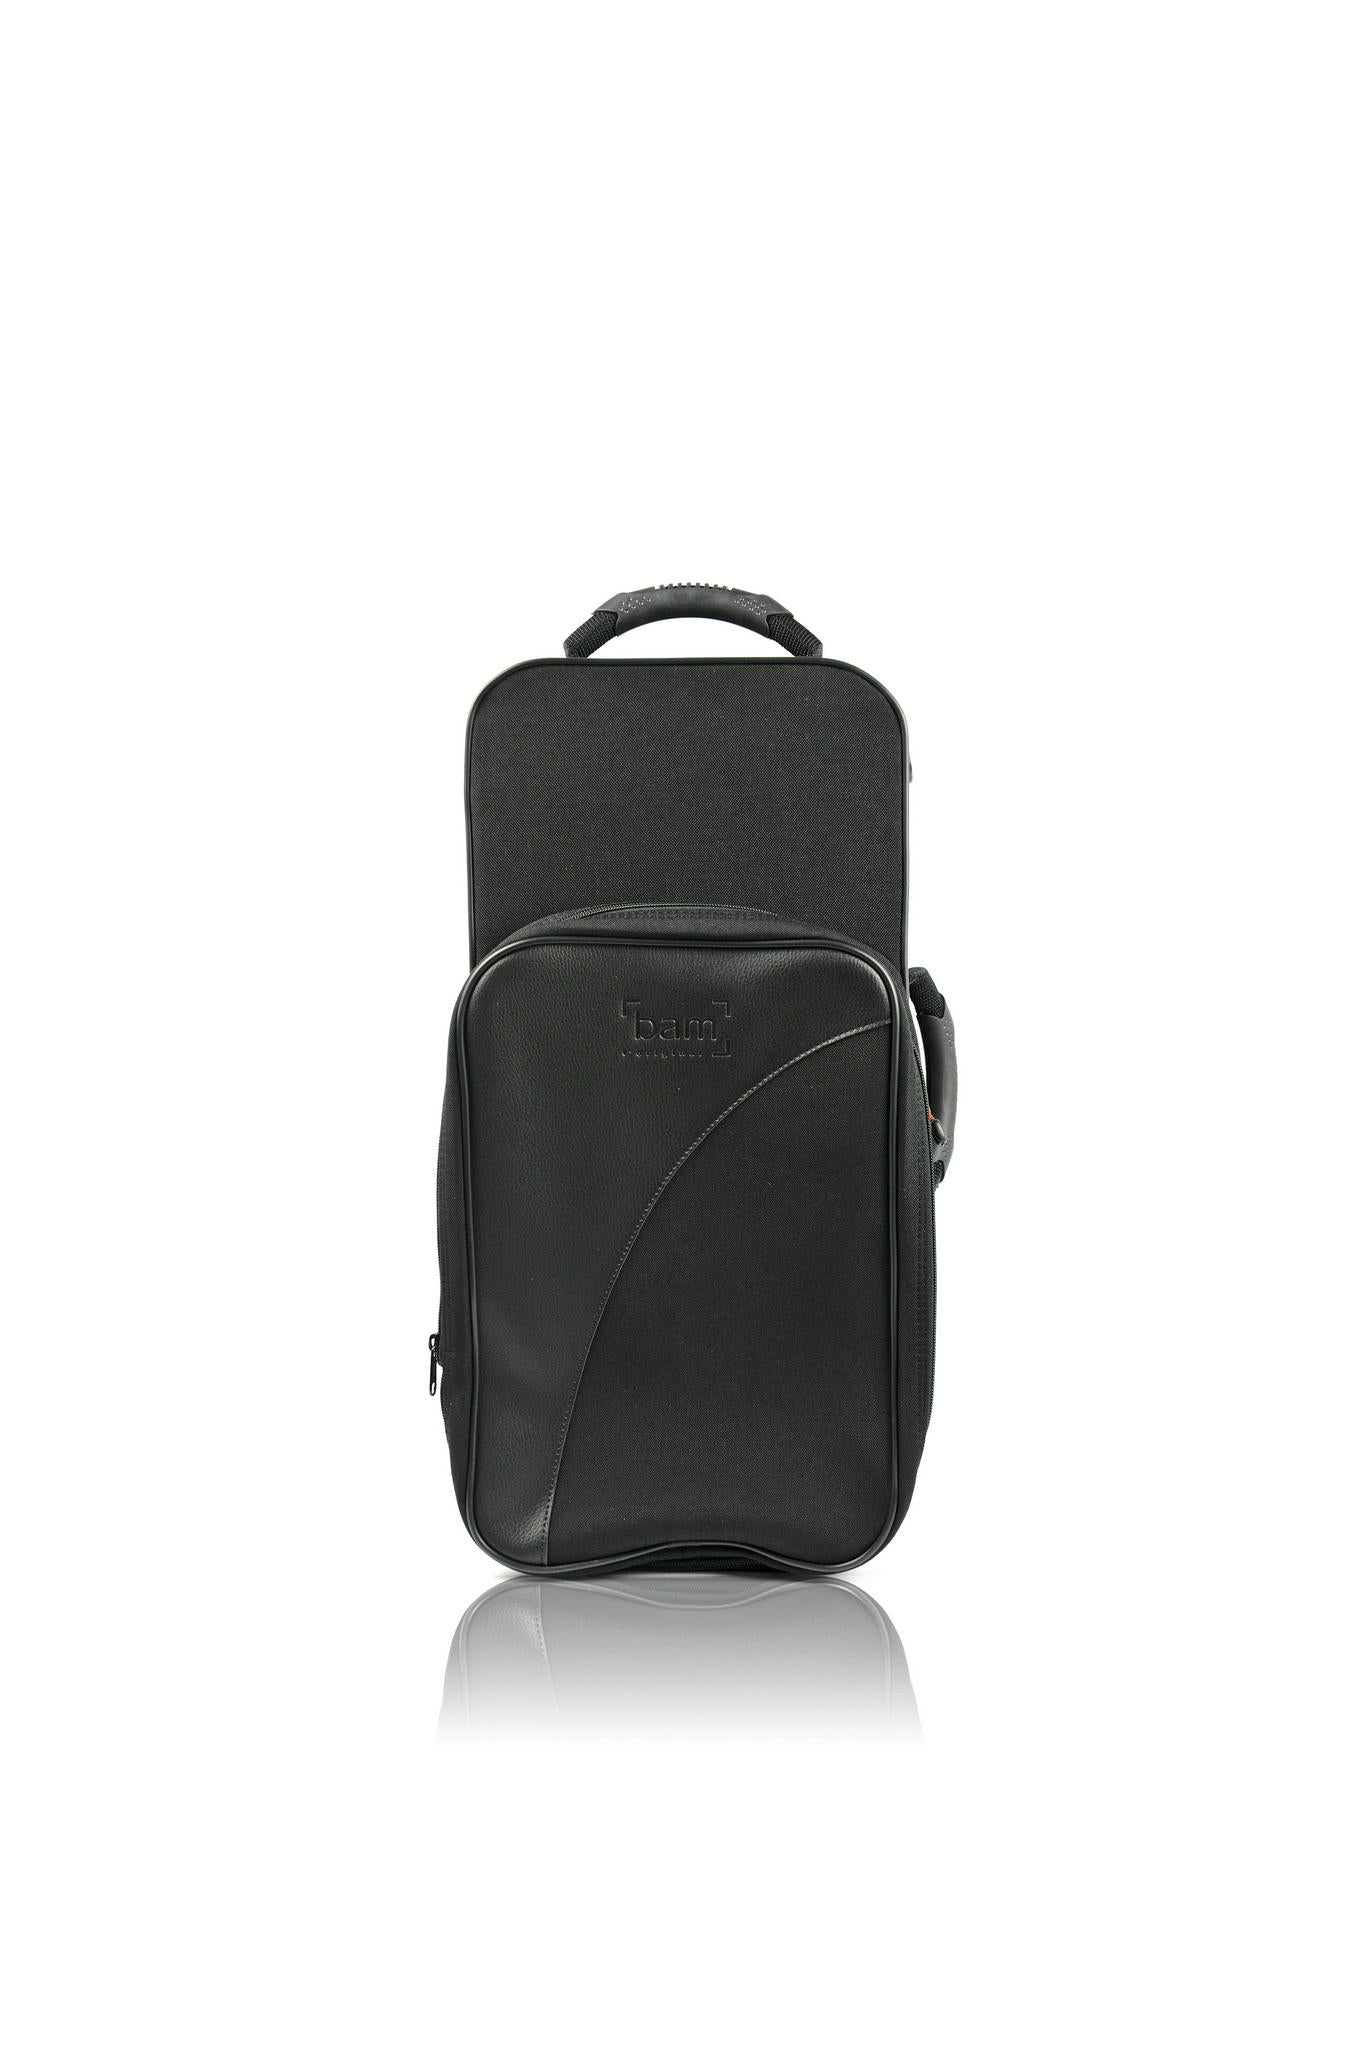 BAM TREKKING Two Trumpets Case